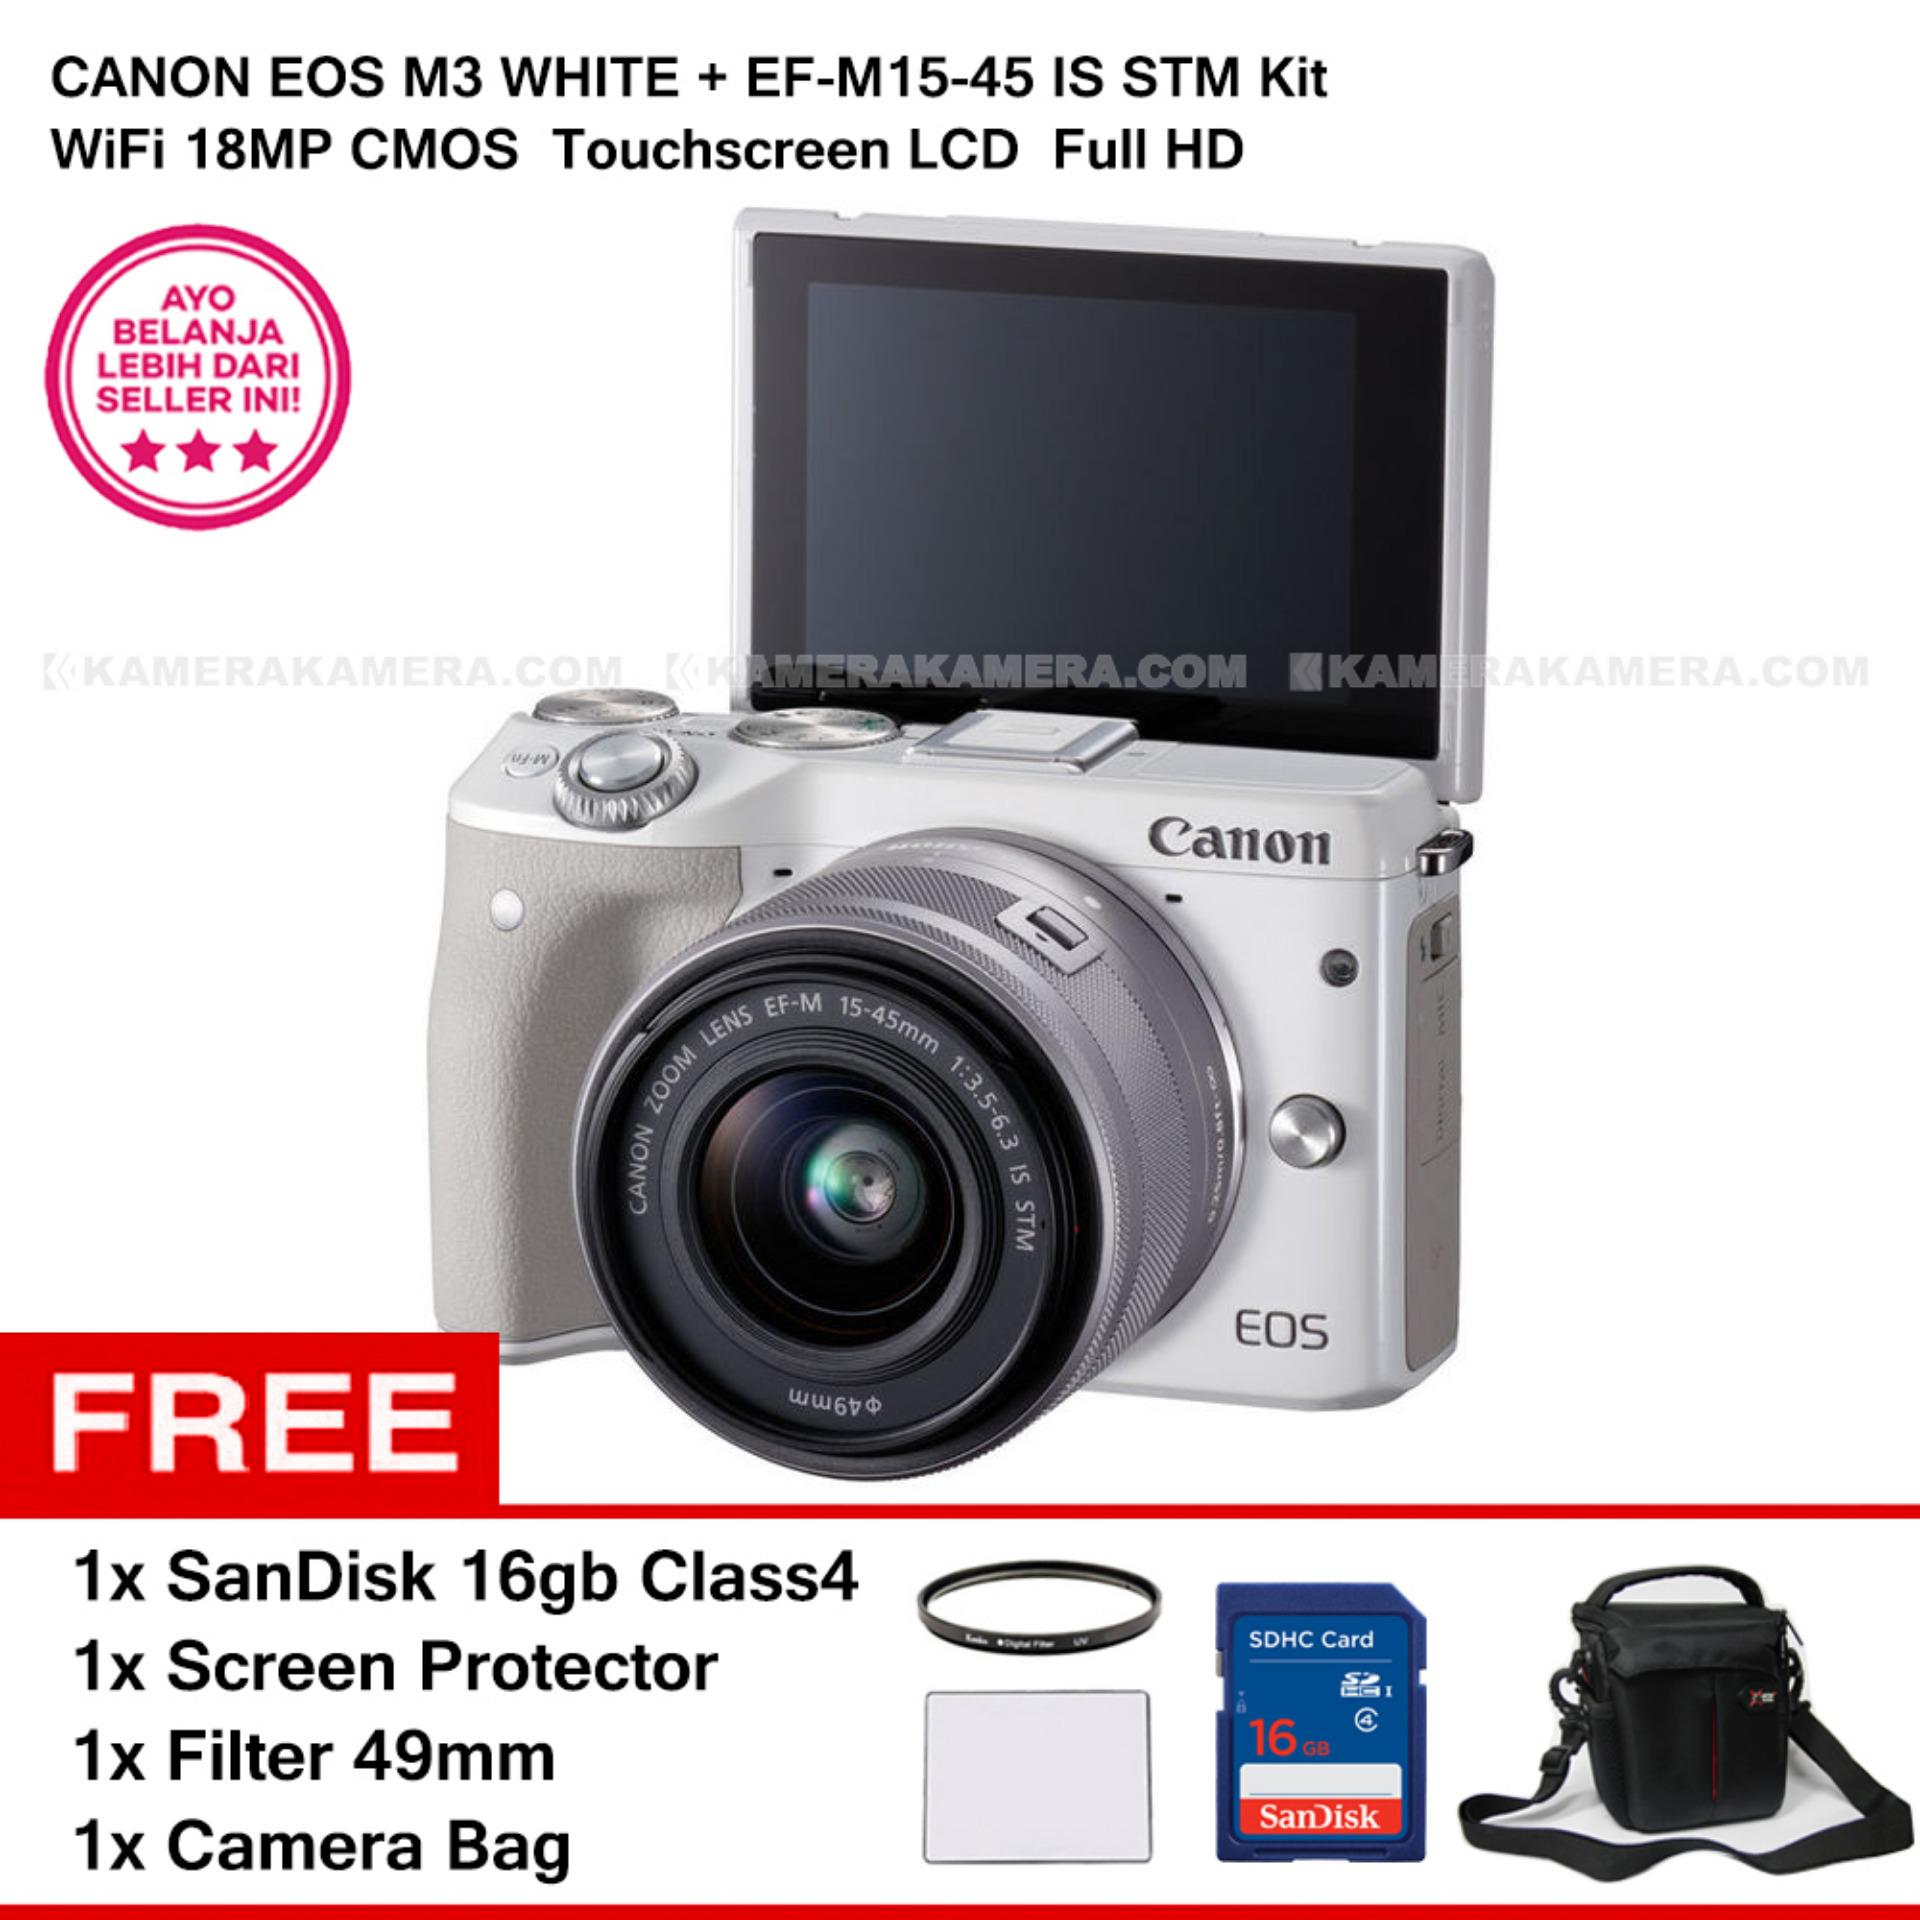 CANON EOS M3 + EF-M15-45 IS STM KIT (WHITE) 24.2MP WiFi Touchscreen LCD + SanDisk 16gb + Screen Protector + Filter 49mm + Camera Bag